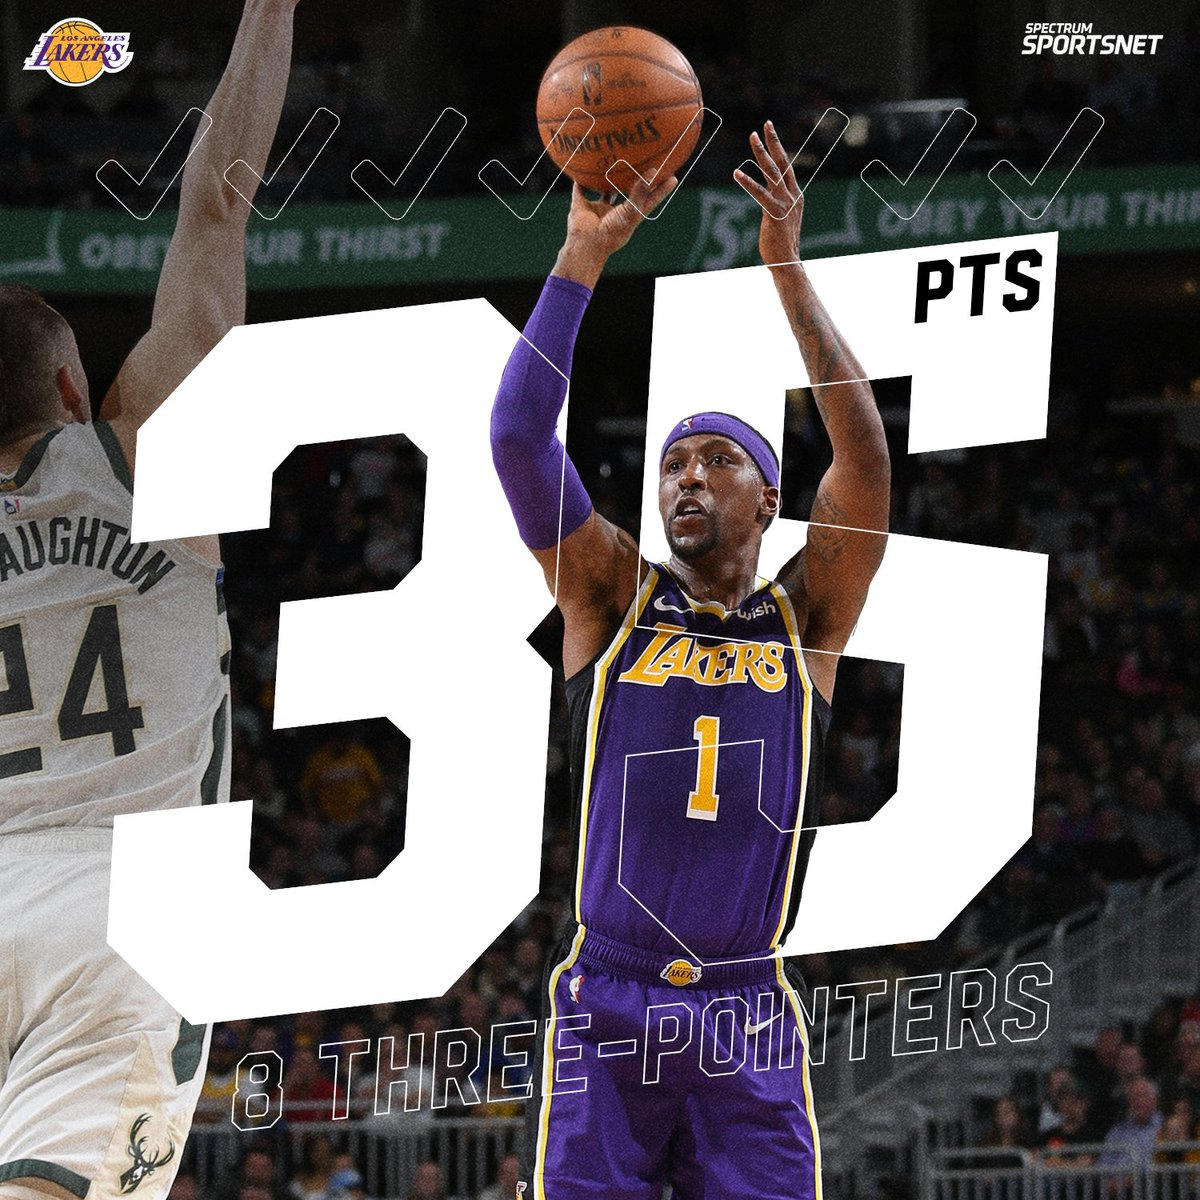 .@CaldwellPope sets his Laker high in points (35) that included EIGHT three-pointers! 🎯